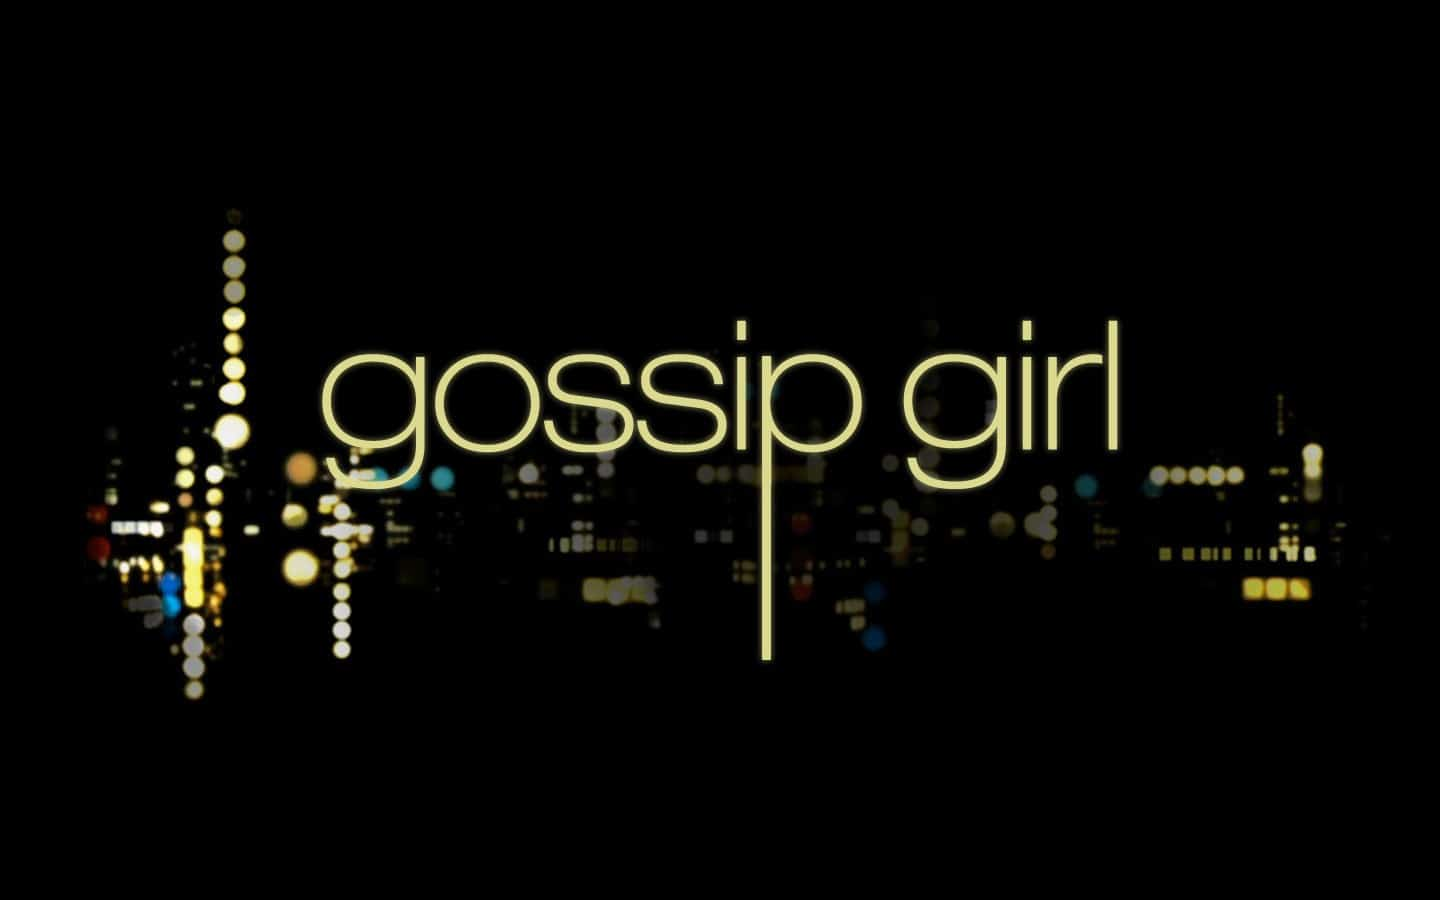 Gossip Girl intro poster